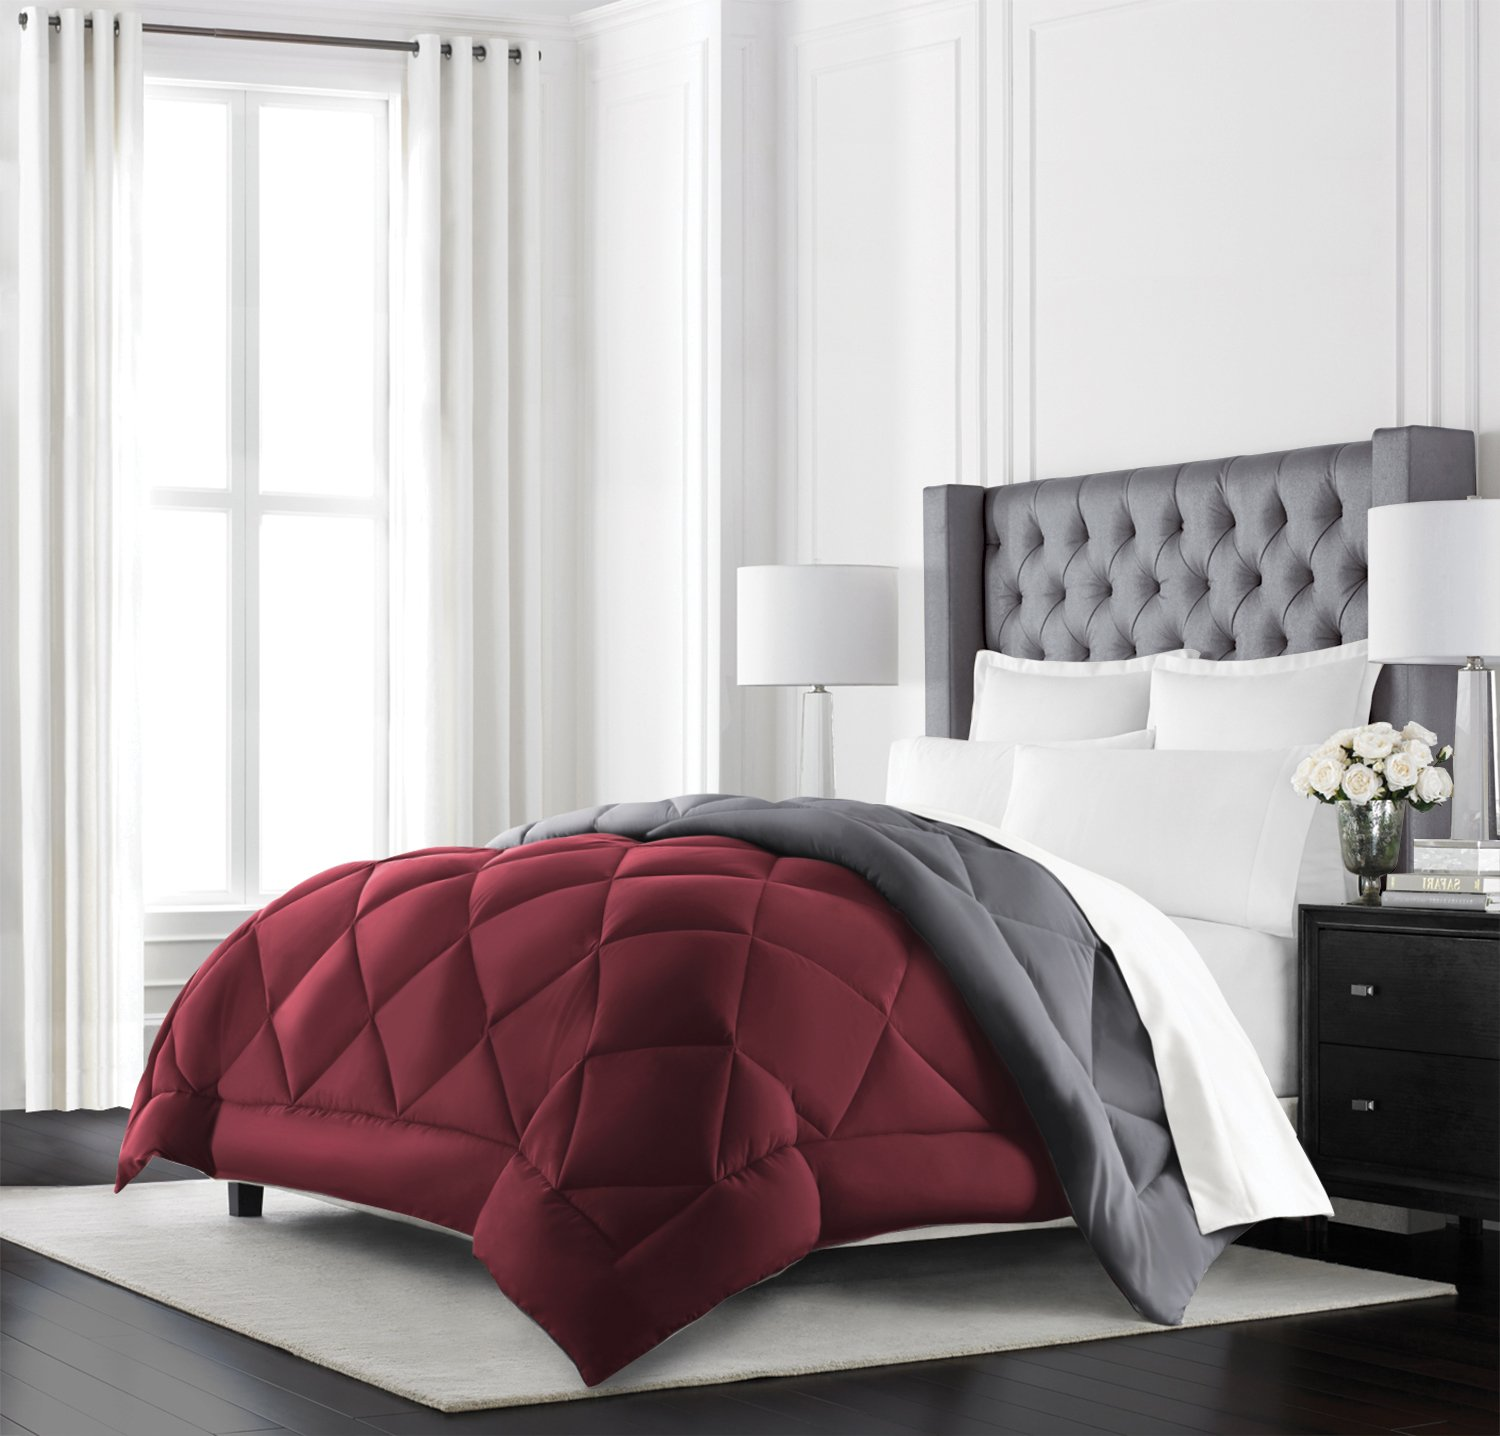 All Season - Premium Quality Luxury Hypoallergenic Comforter - Full/Queen - Burgundy/Grey